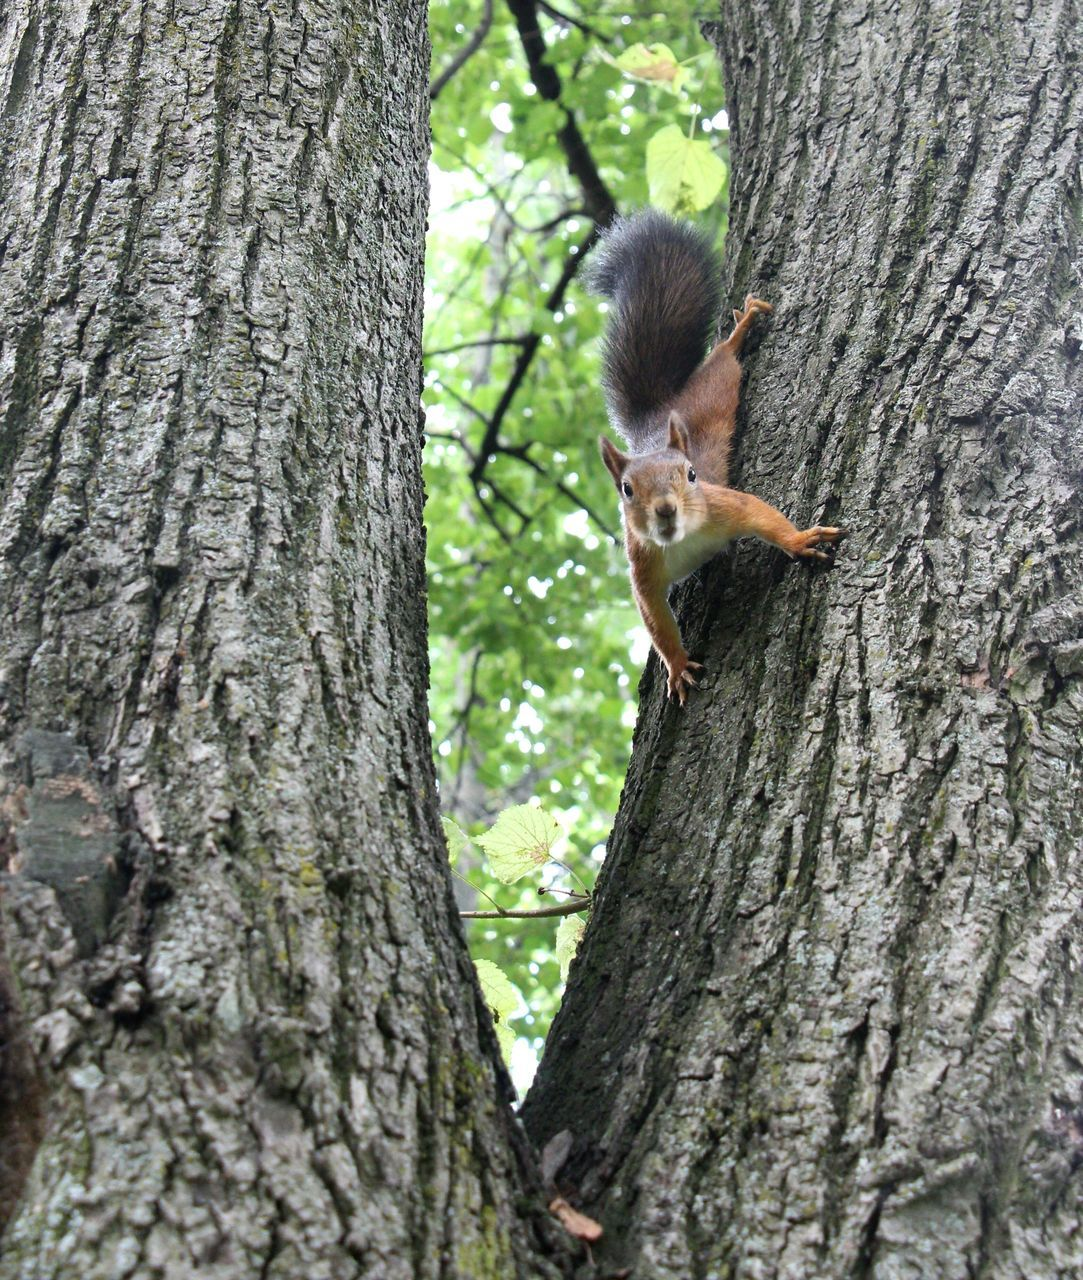 tree trunk, tree, one animal, animal themes, squirrel, day, outdoors, mammal, animals in the wild, no people, woodpecker, nature, animal wildlife, growth, bat - animal, close-up, raccoon